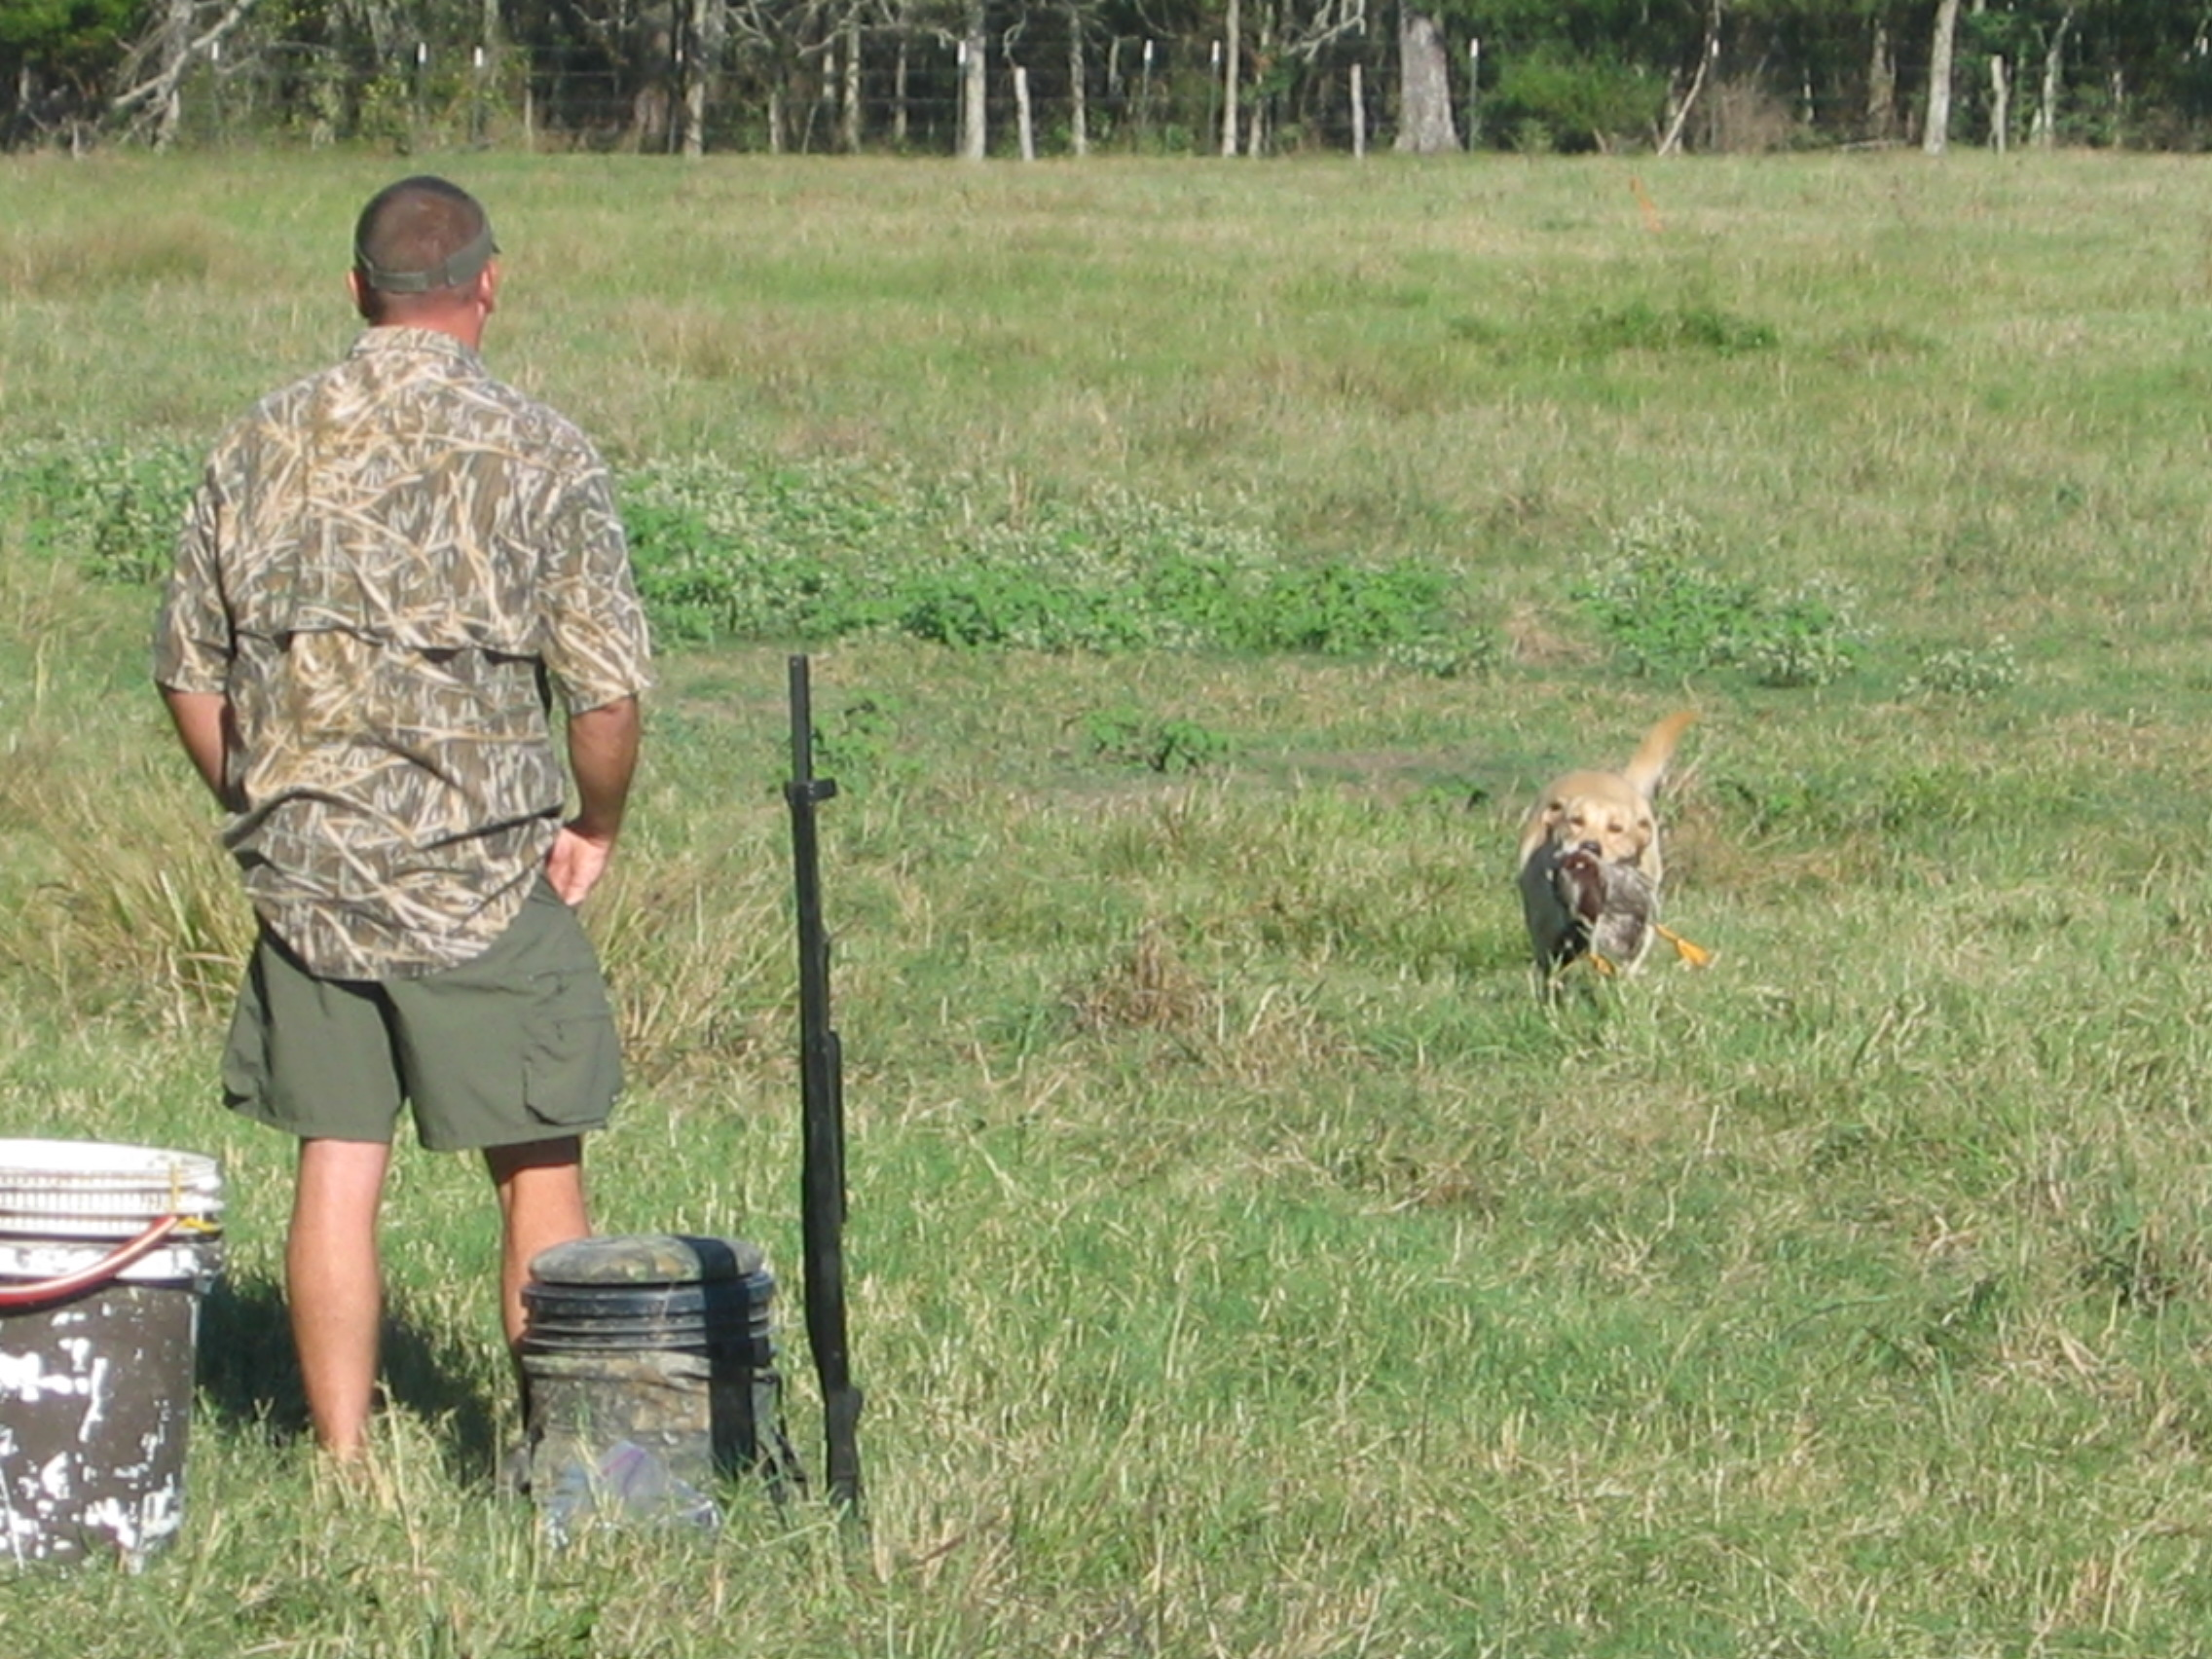 Gun Dog retrieving duck, field trial